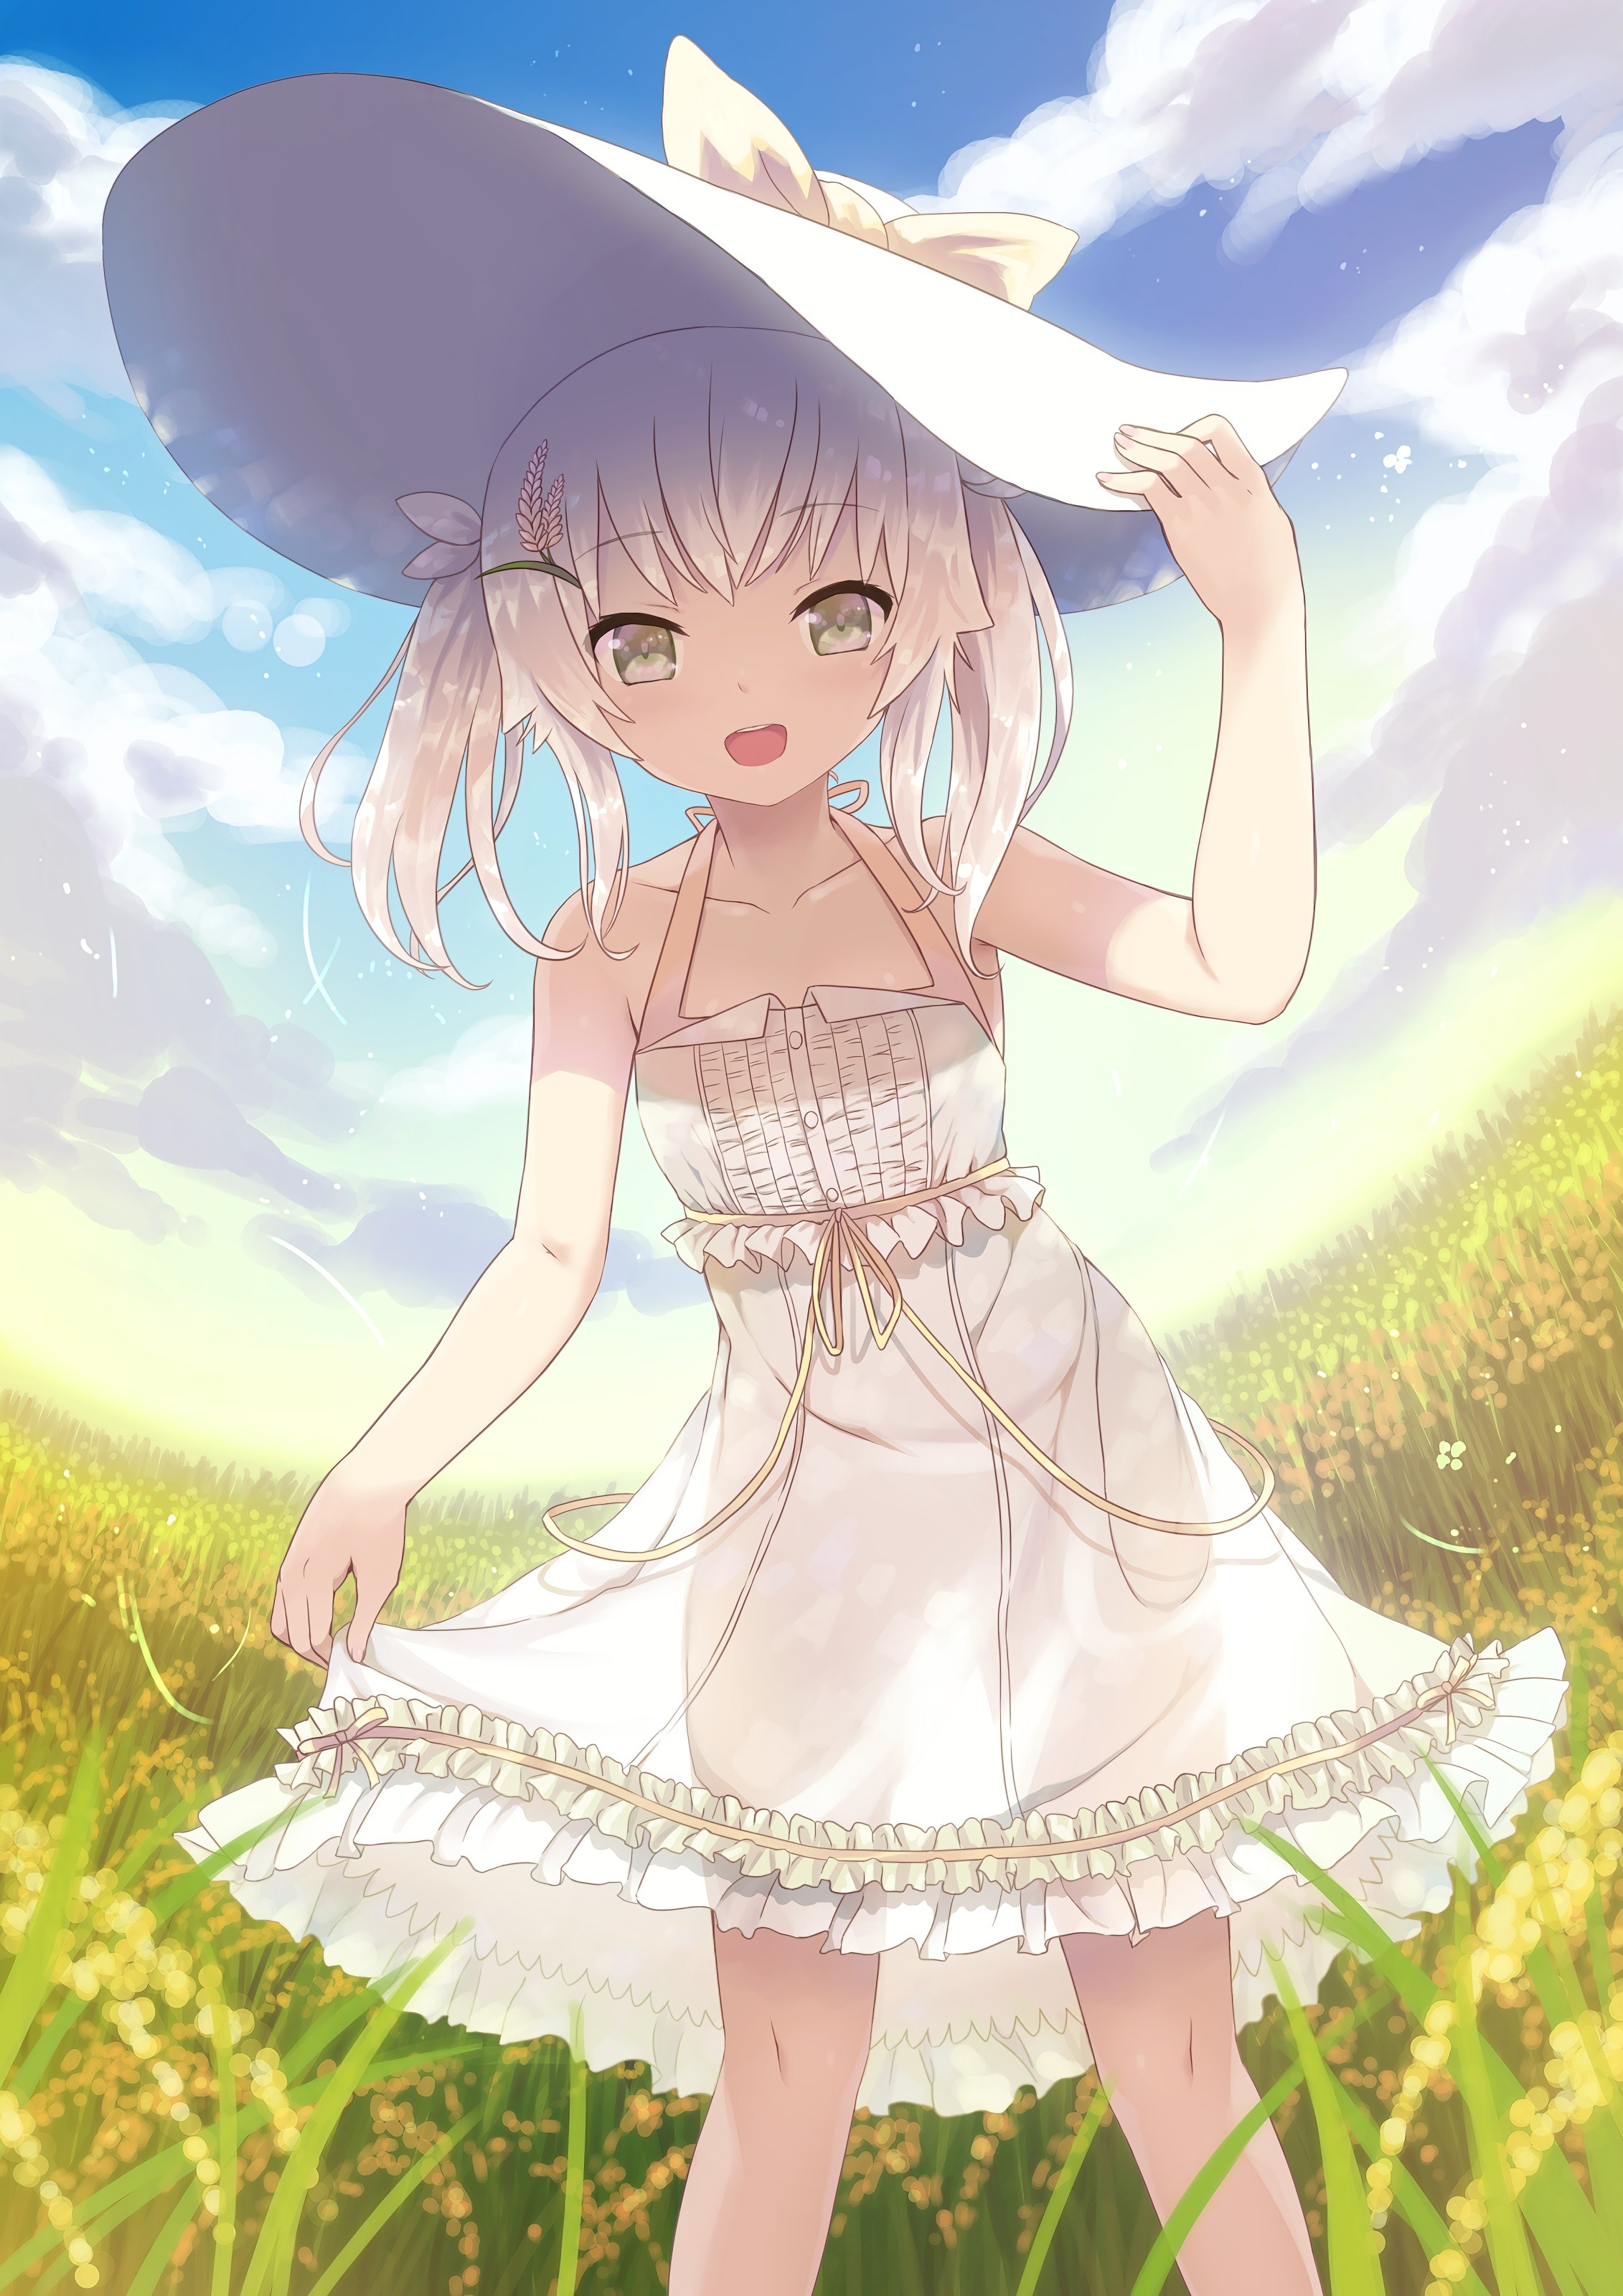 Anime 2262x3200 anime anime girls field dress white dress looking at viewer smiling gray eyes white hair short hair hat sun hats grass Frill dress frills